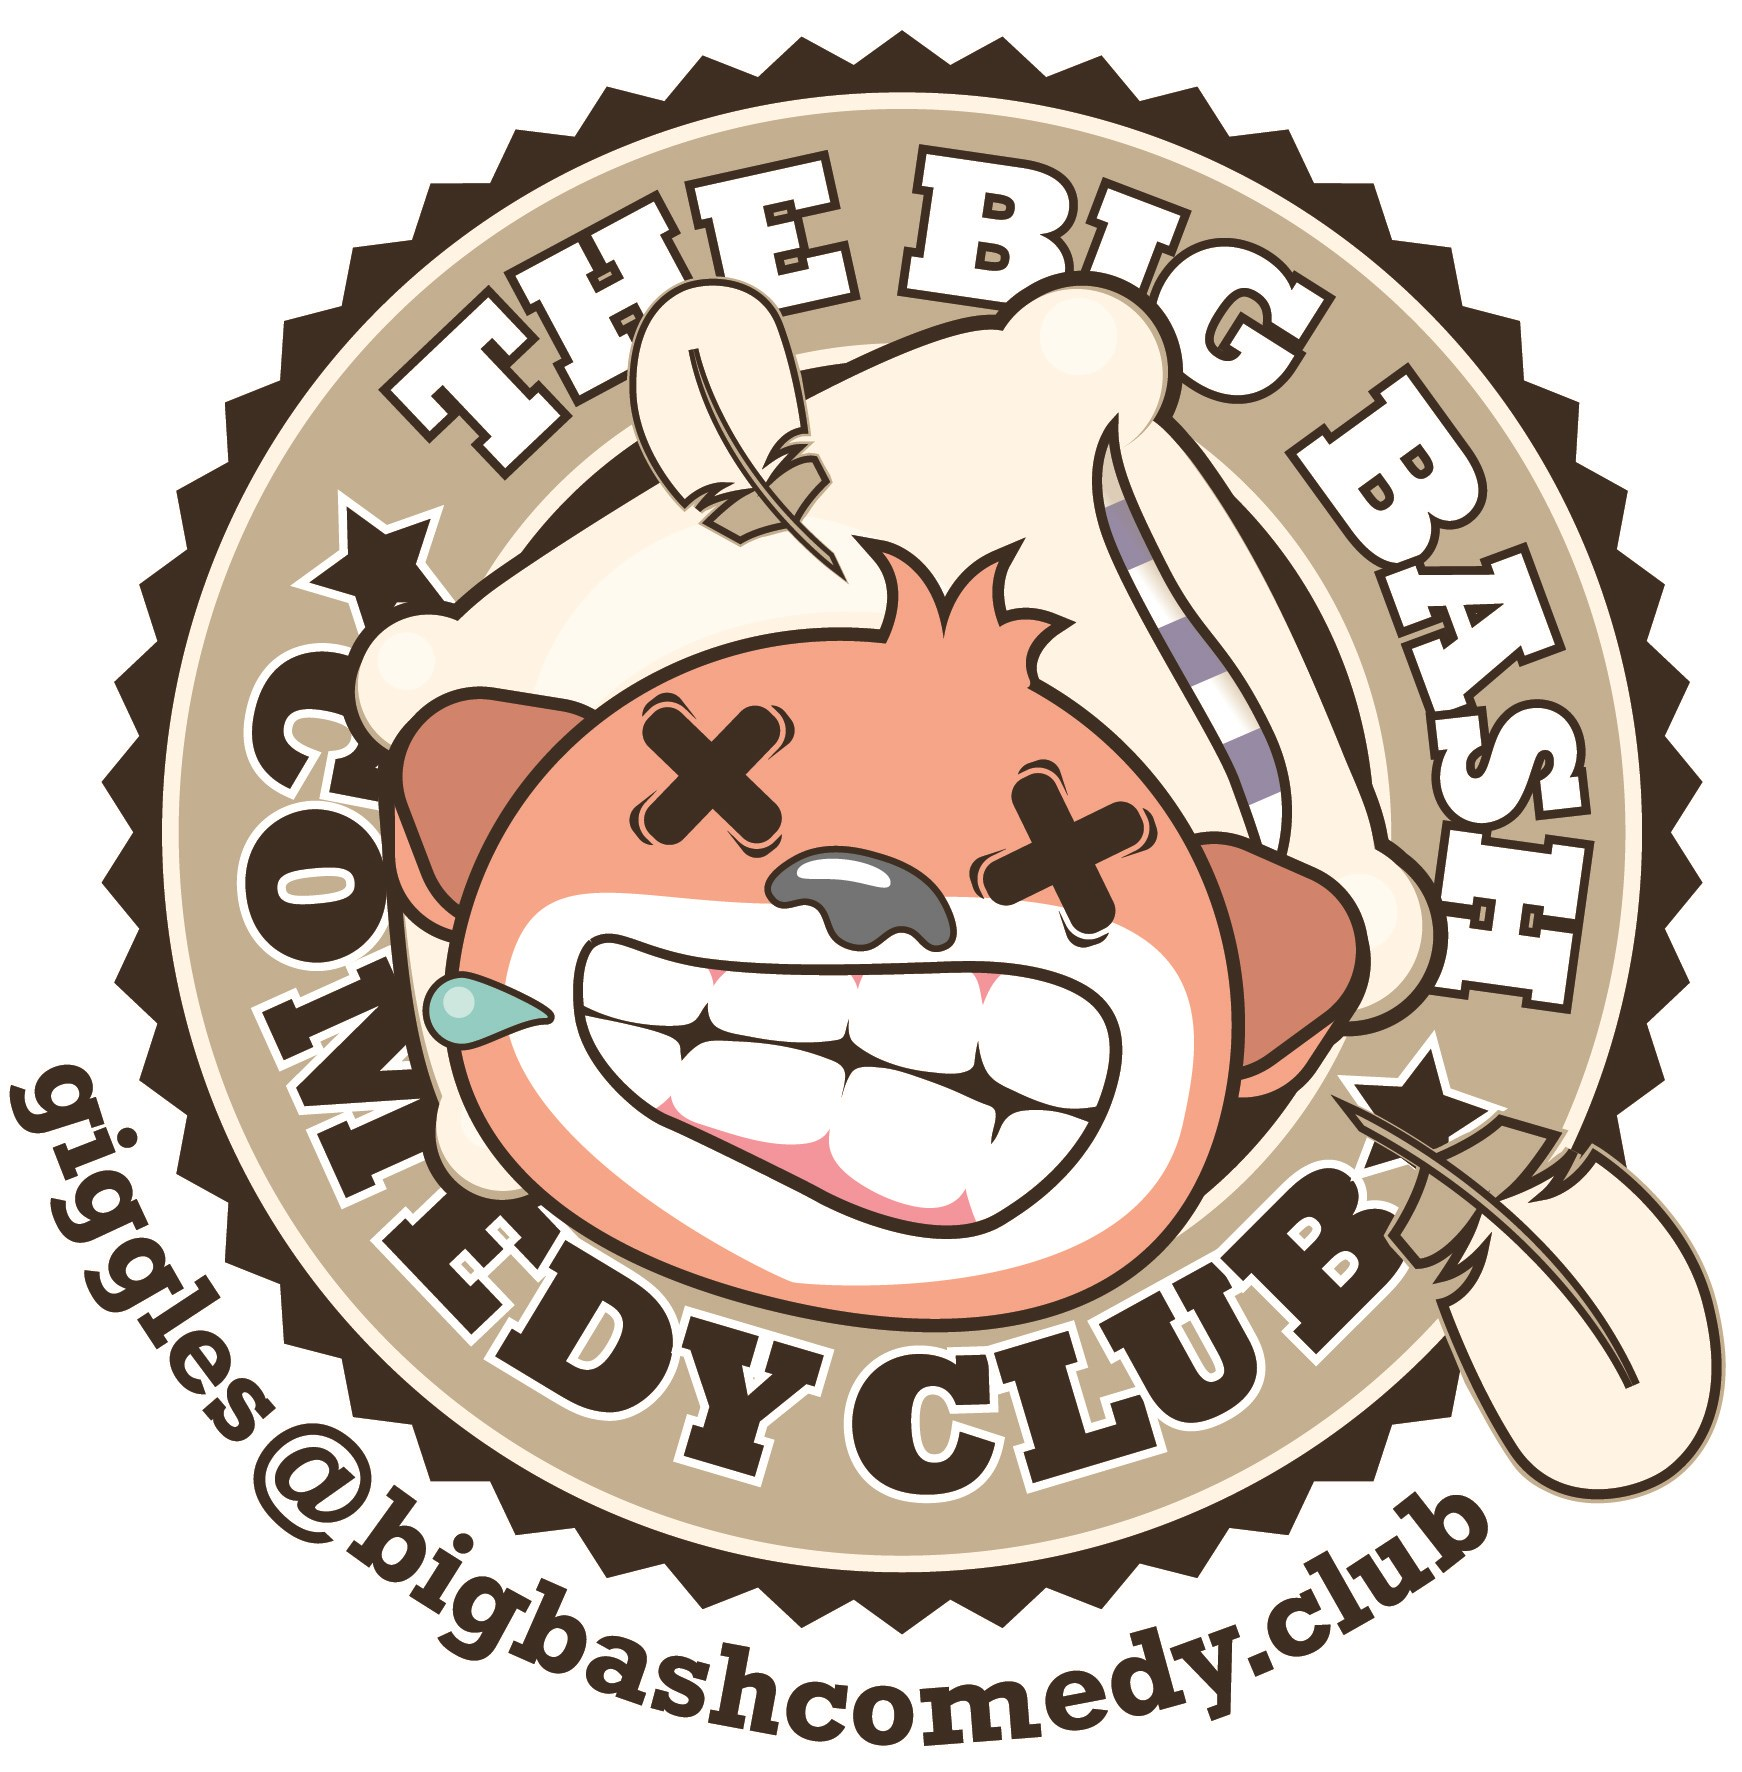 Big Bash Comedy Club in association with Funhouse Comedy Club